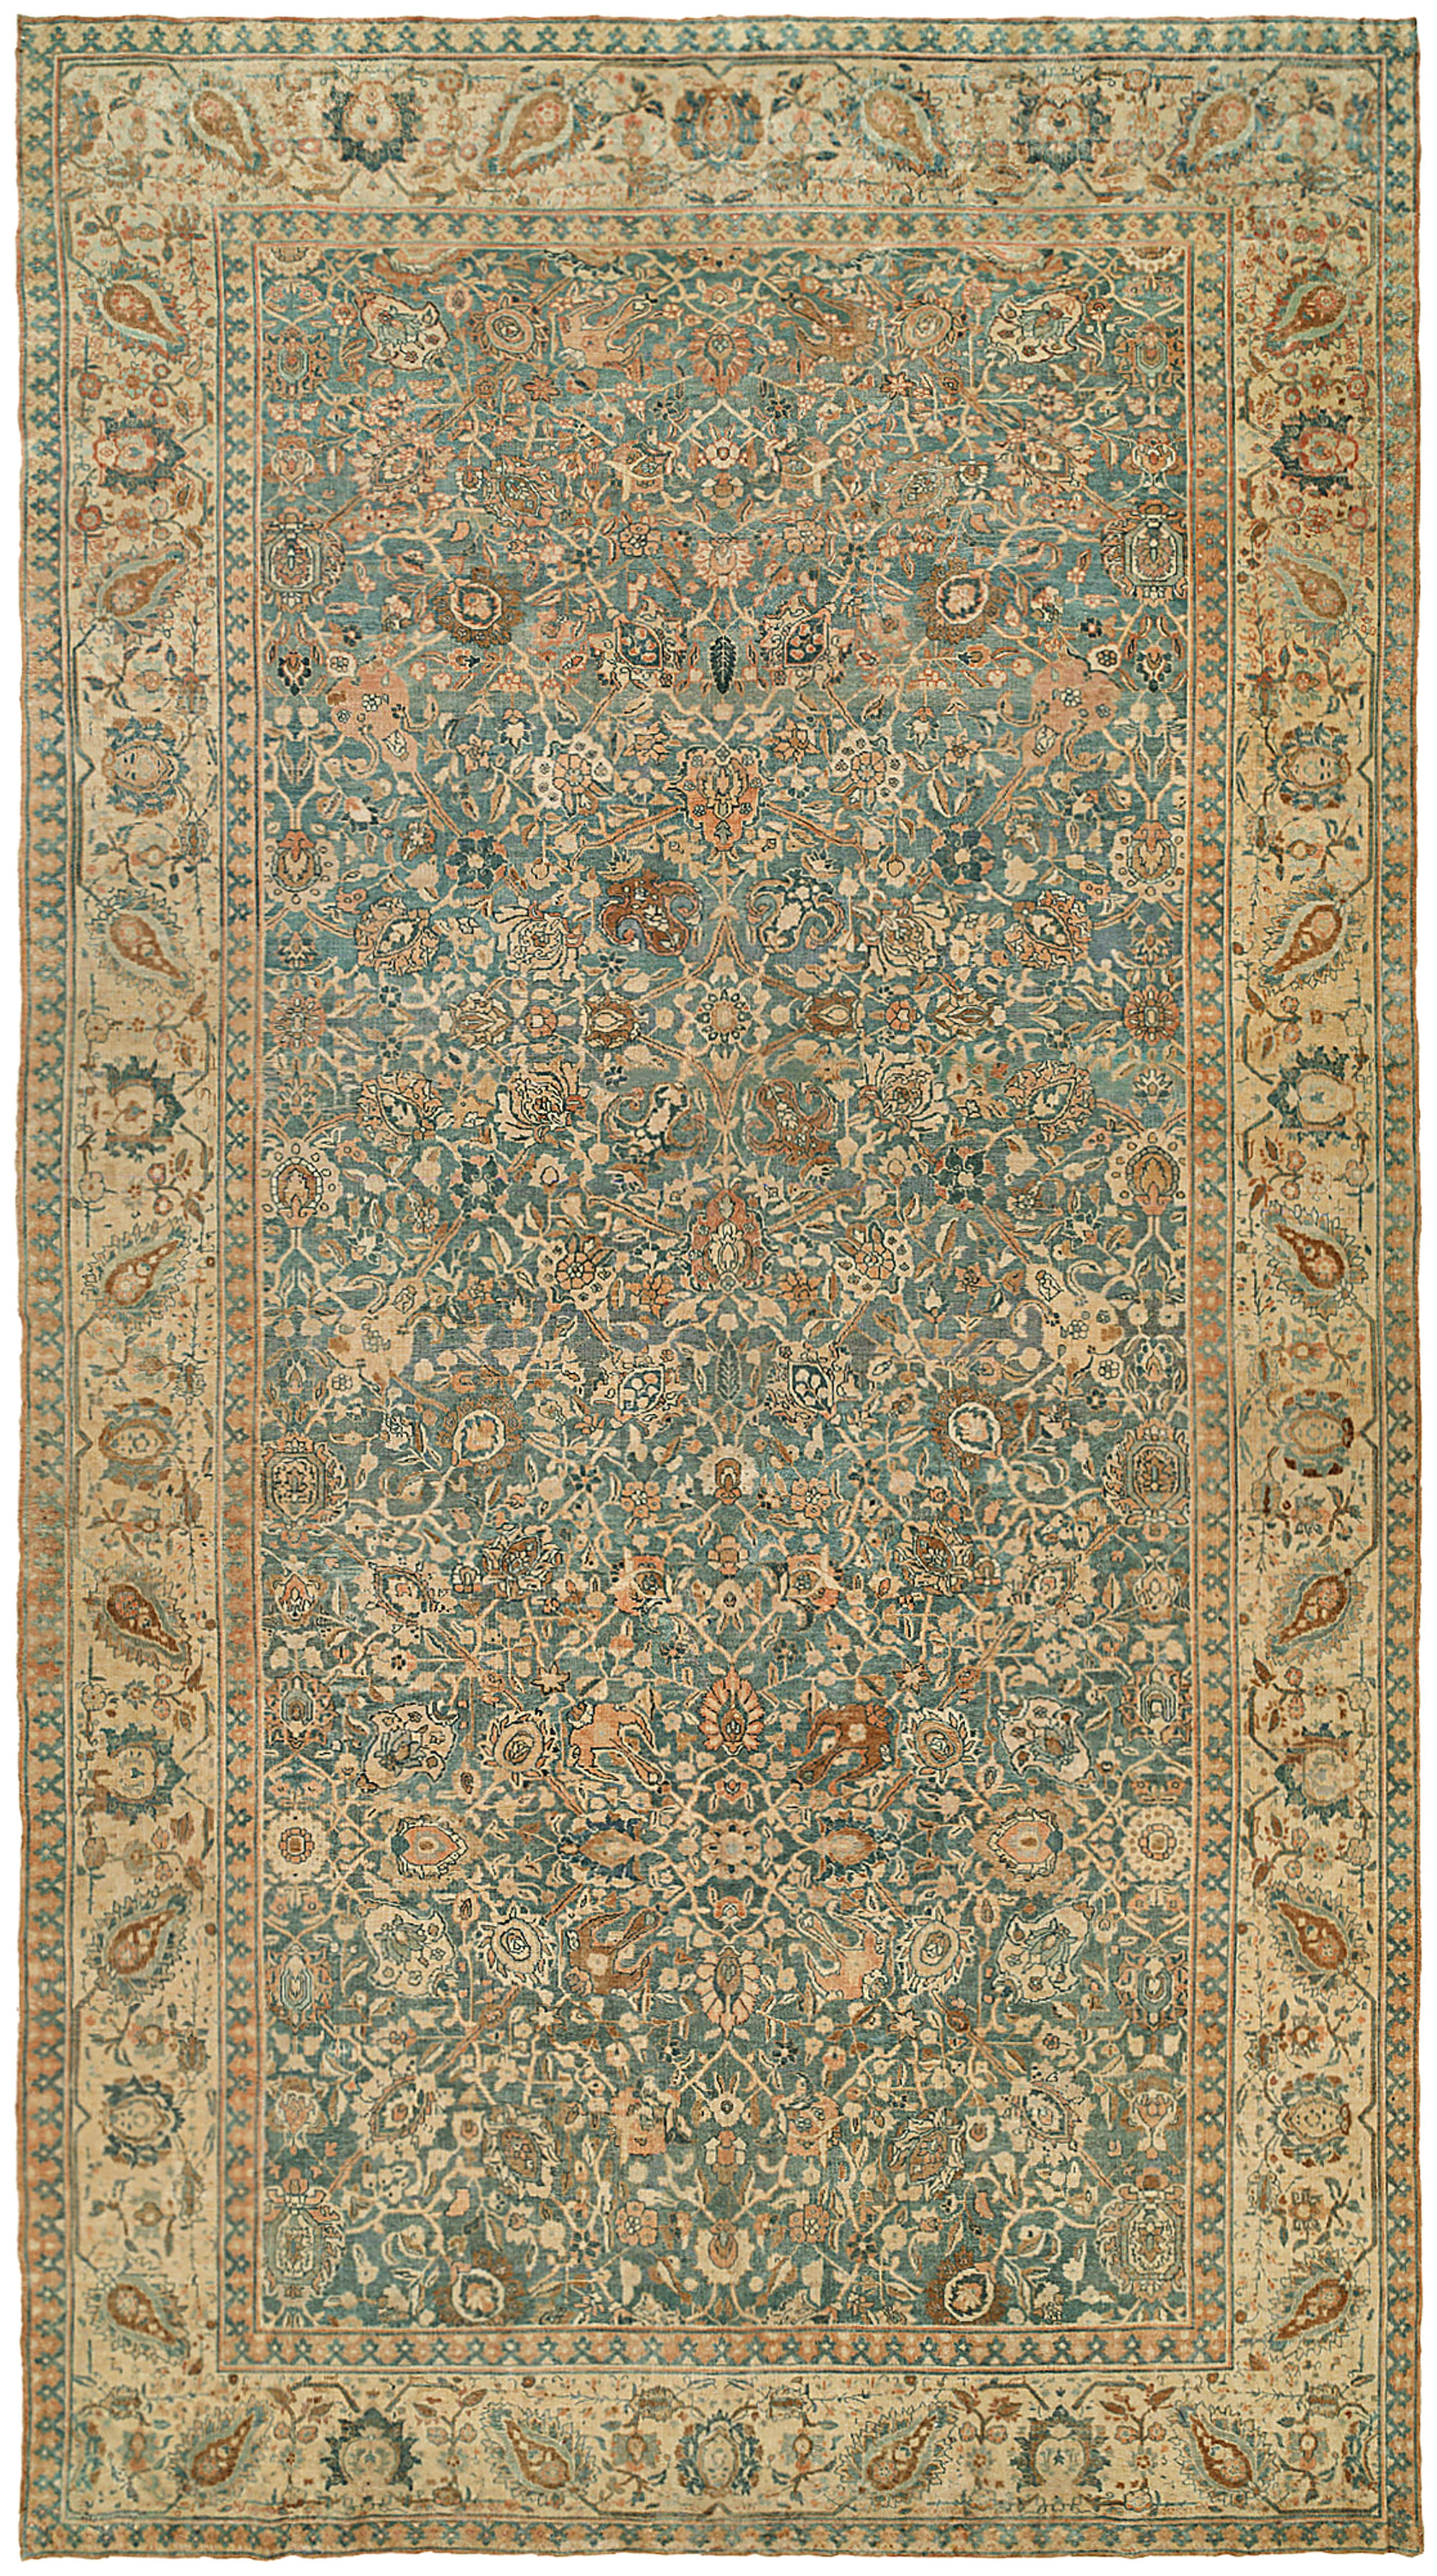 Antique Persian Tabriz Rug Bb2187 Doris Leslie Blau Pertaining To Green Persian Rugs (Image 1 of 15)